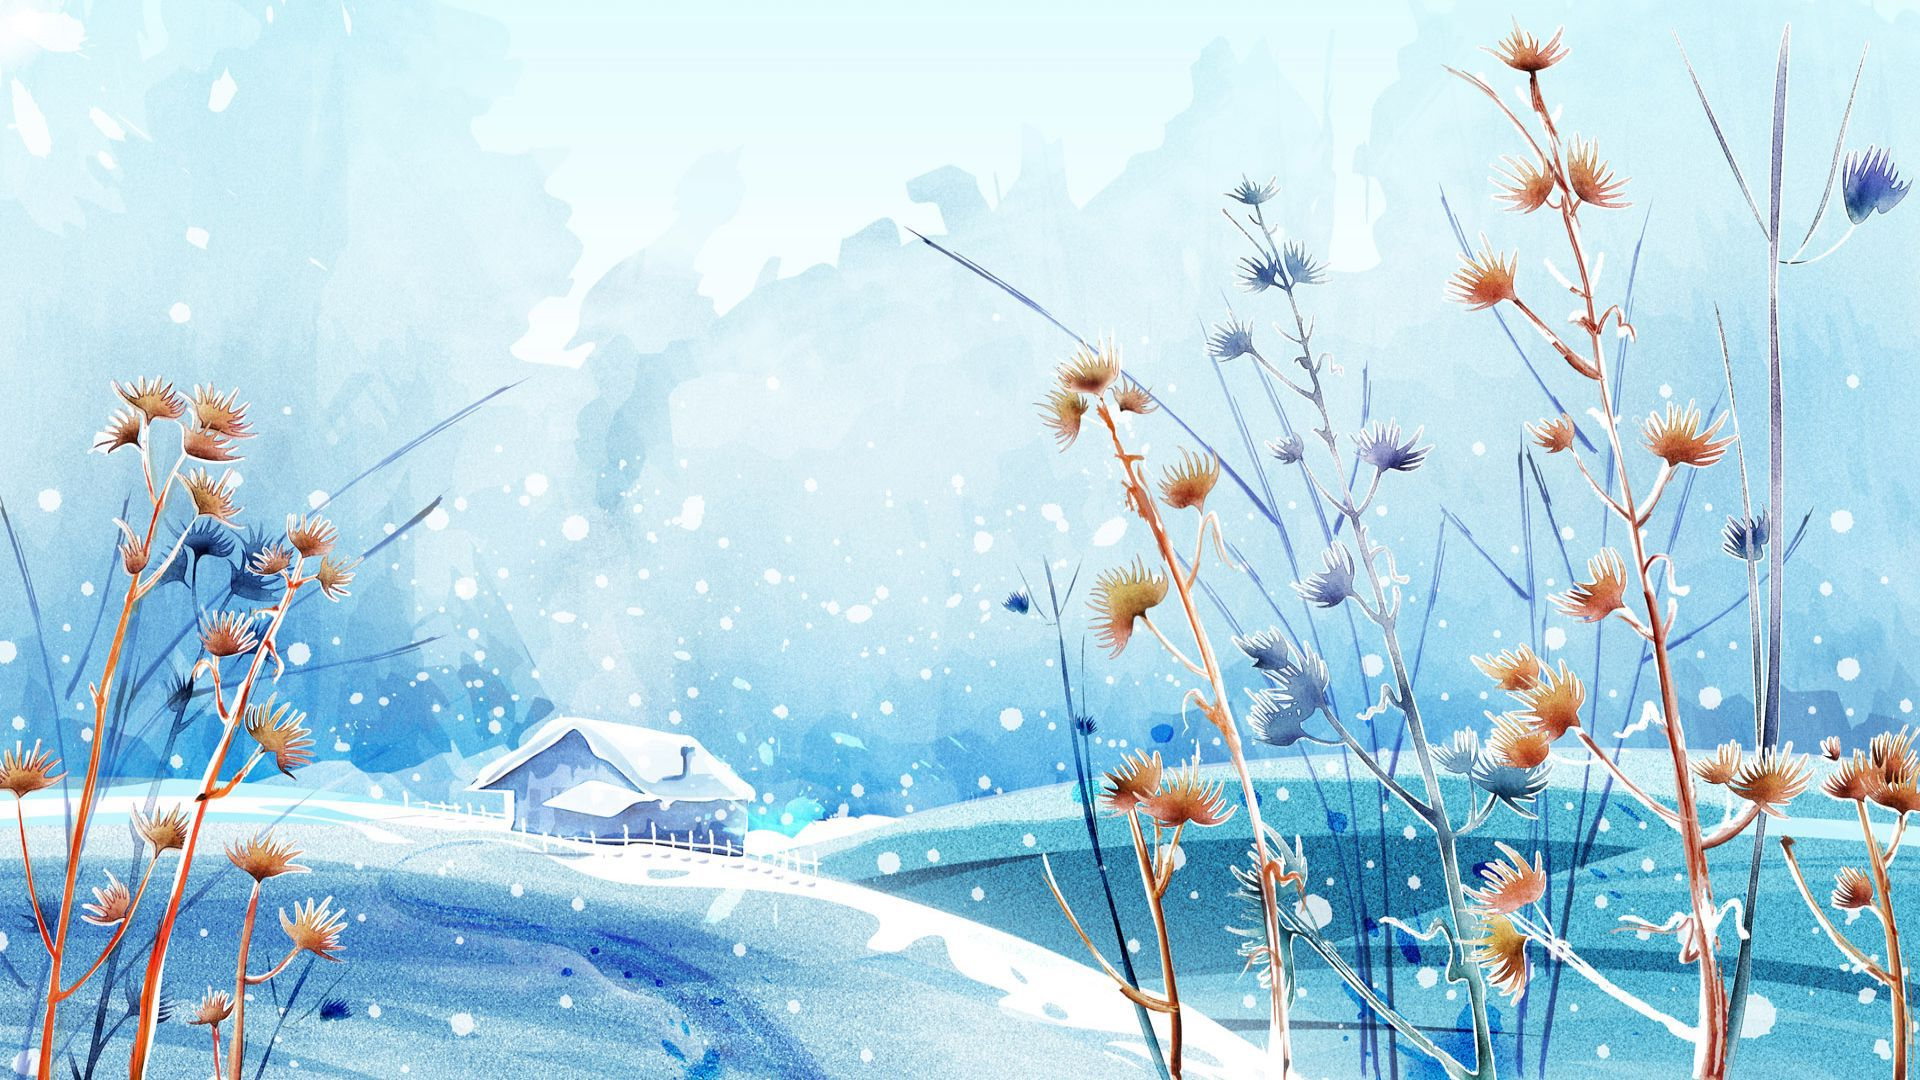 Nature Anime Winter Scenery Background Wallpaper Winter Wallpaper Winter Scenery Scenery Wallpaper